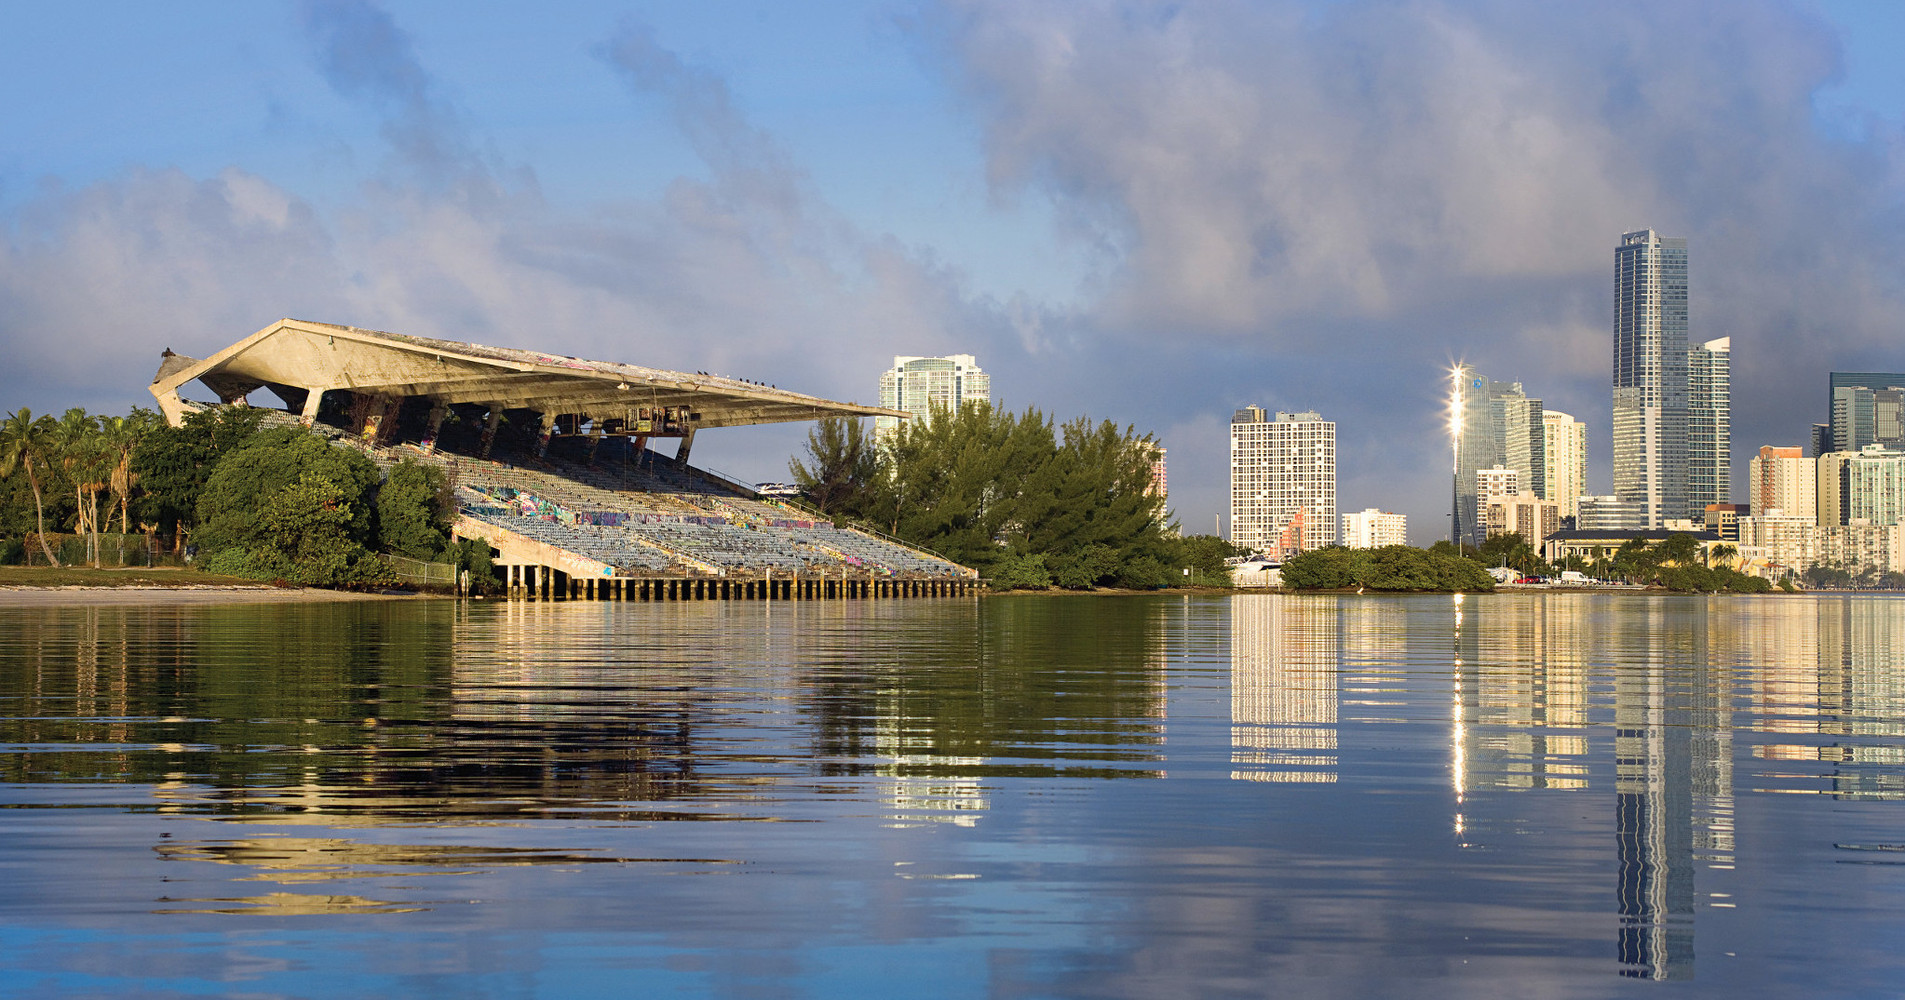 The Miami Marine Stadium was built in 1963 but damaged by Hurricane Andrew in 1992